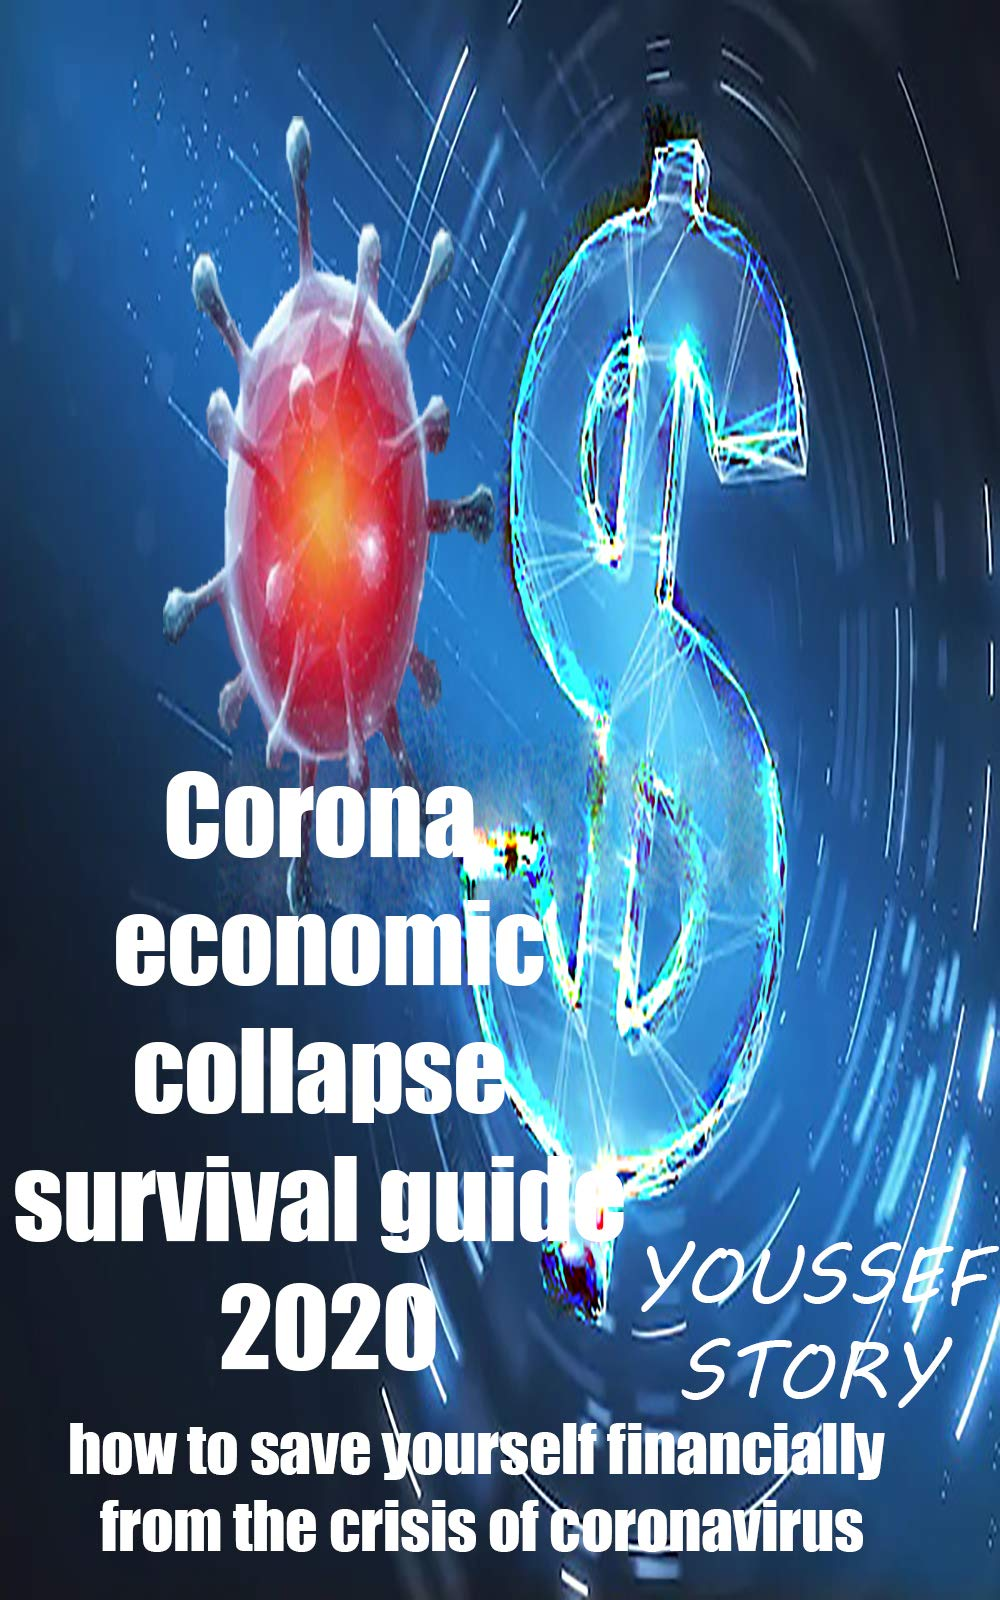 corona economic collapse survival guide 2020: how to save yourself financially from the crisis of coronavirus